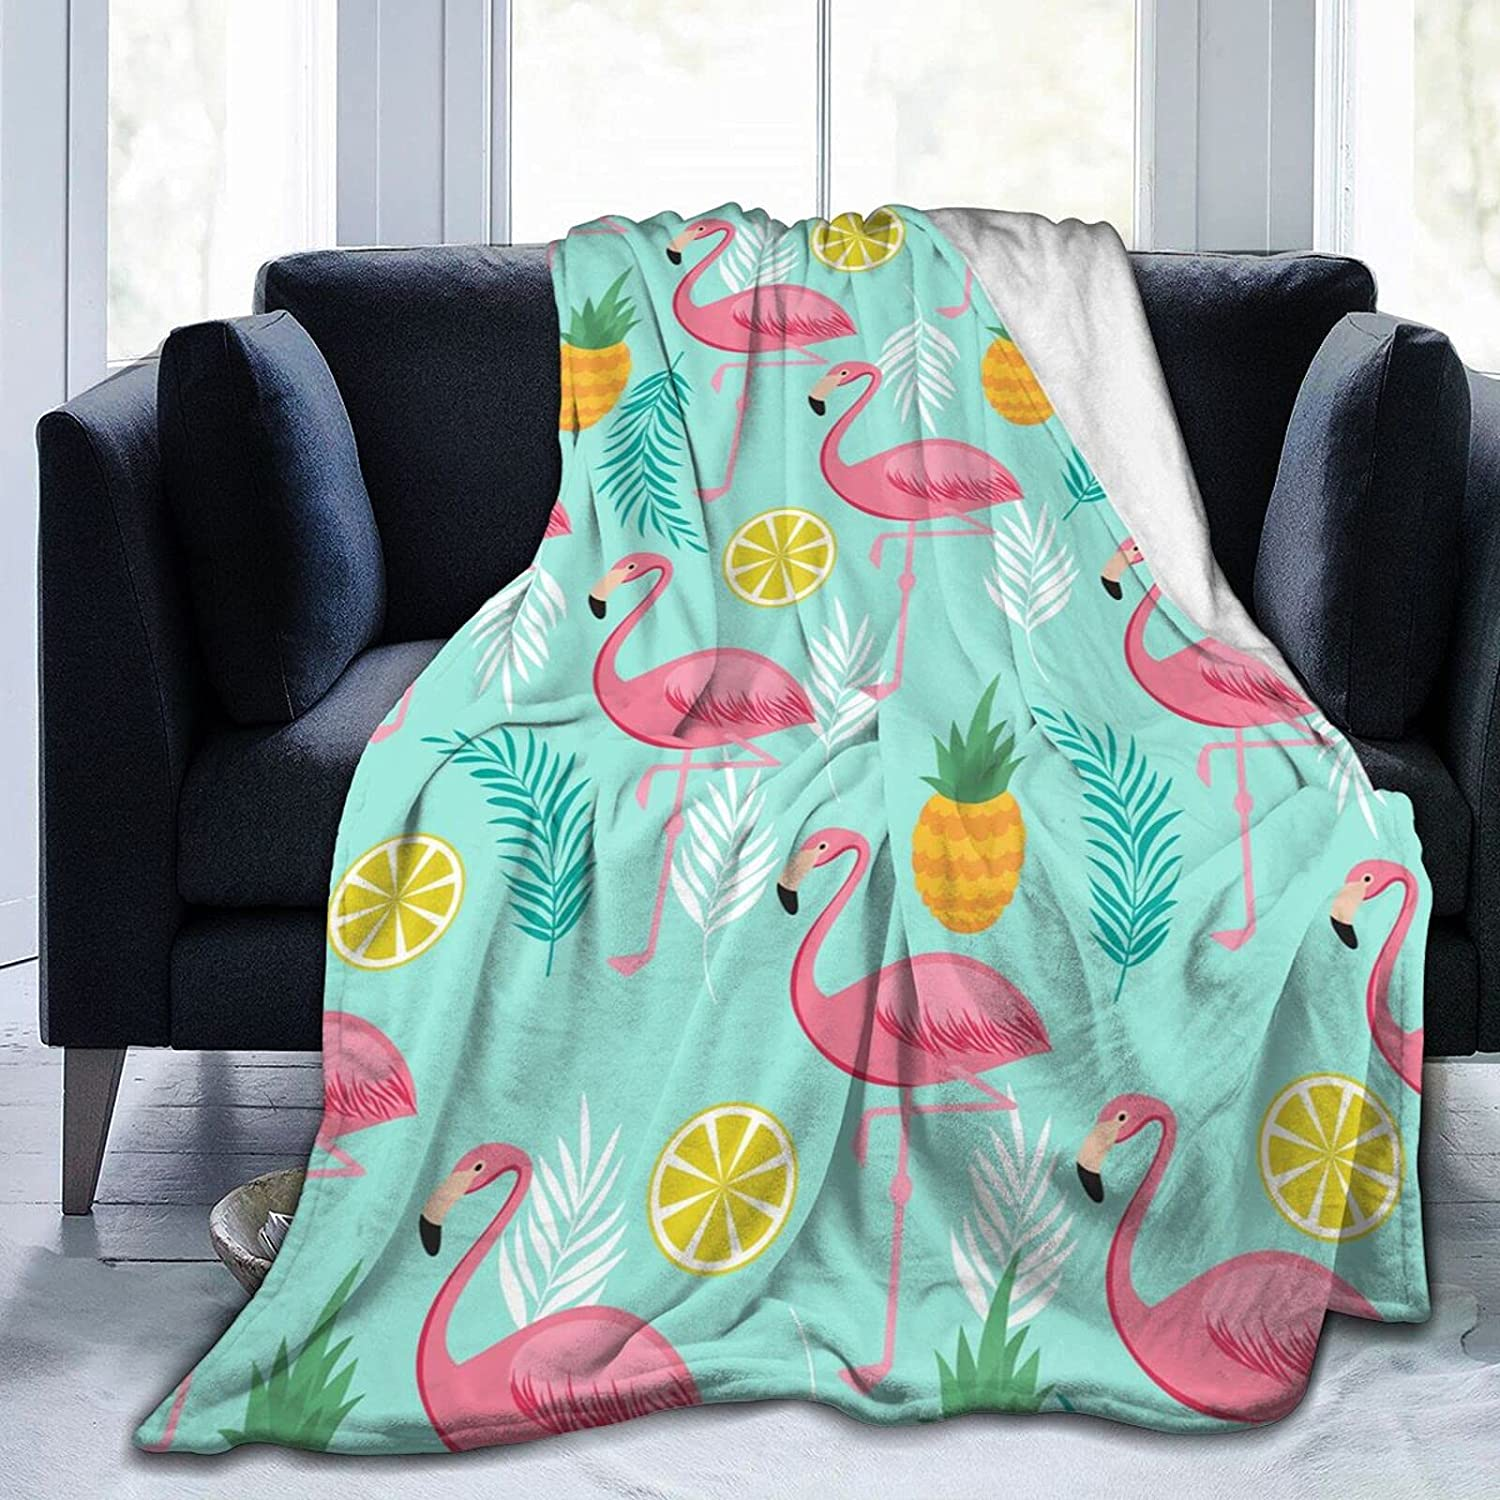 Popular brand in the world Pink Flamingo Blanket Shipping included Ultra-Soft Winter Fleece Sum Micro